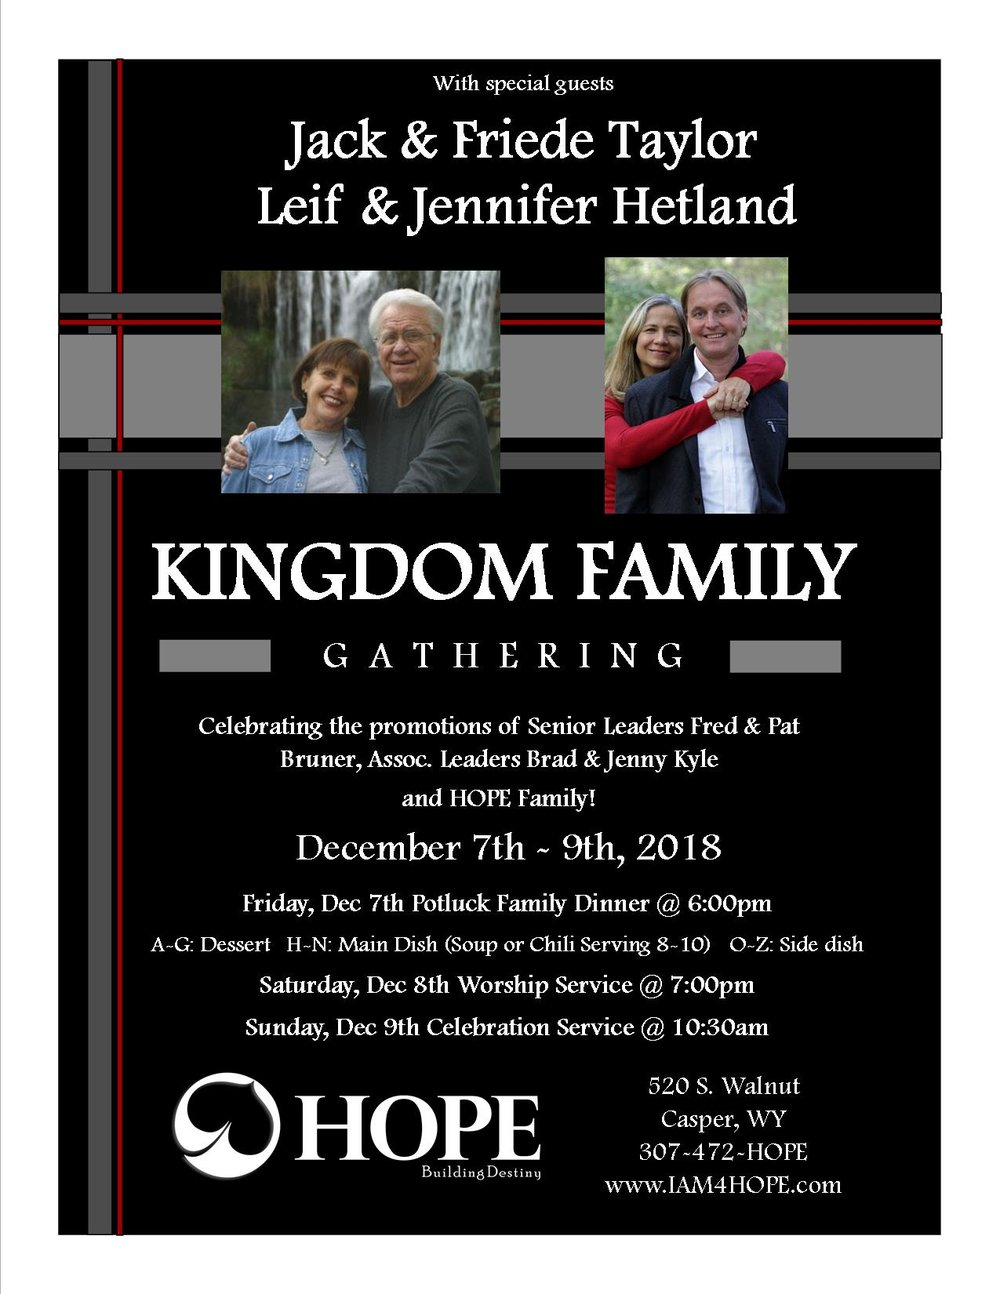 Kingdom Family Gathering Poster.jpg